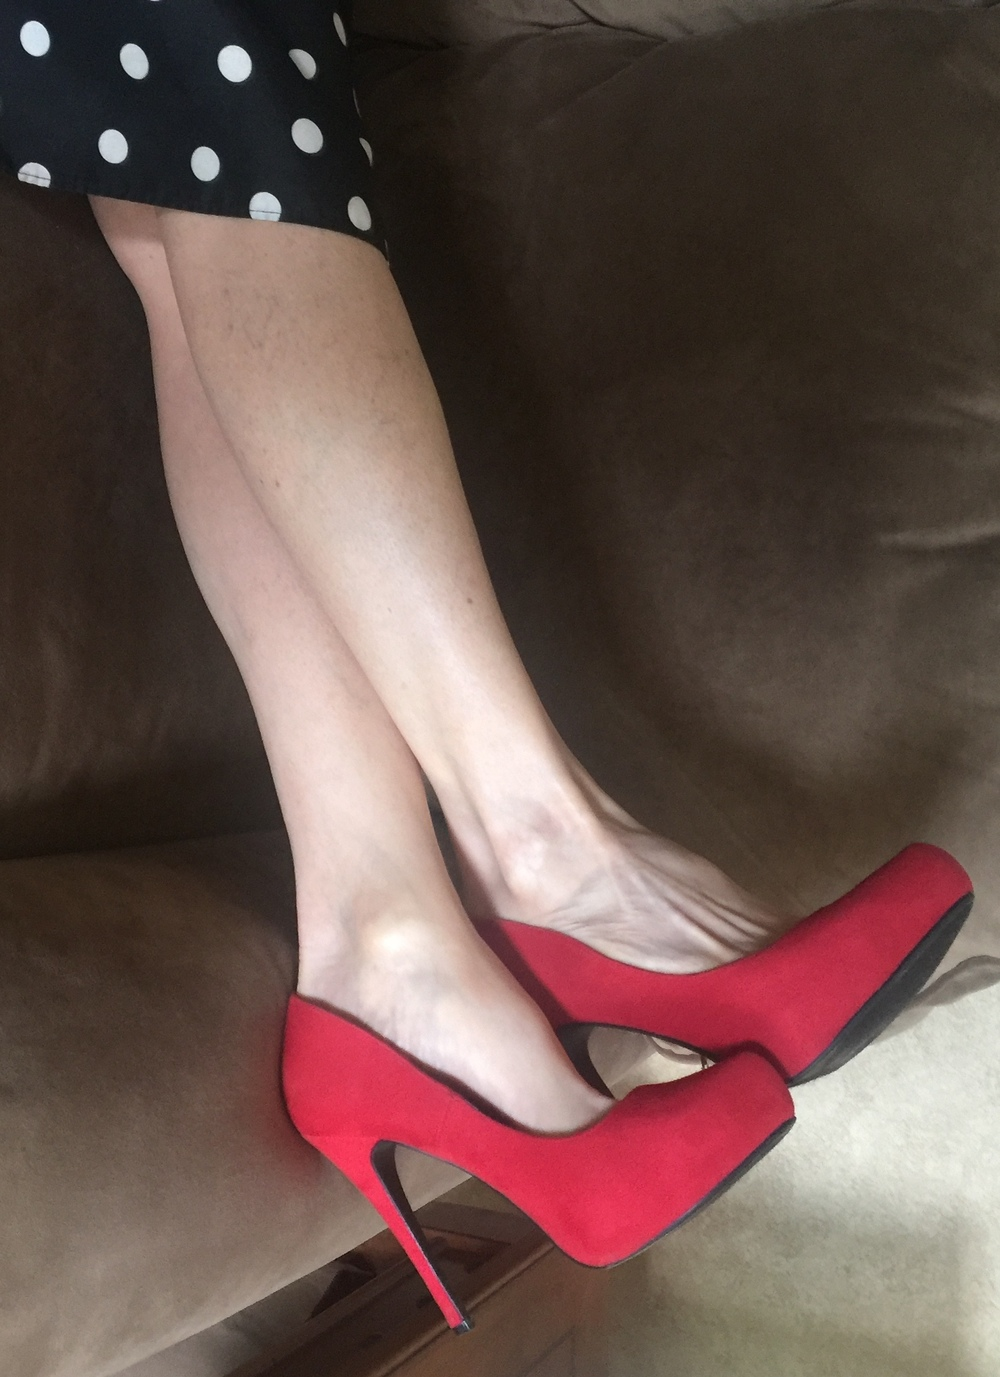 photo 1 - red suede pumps.jpg